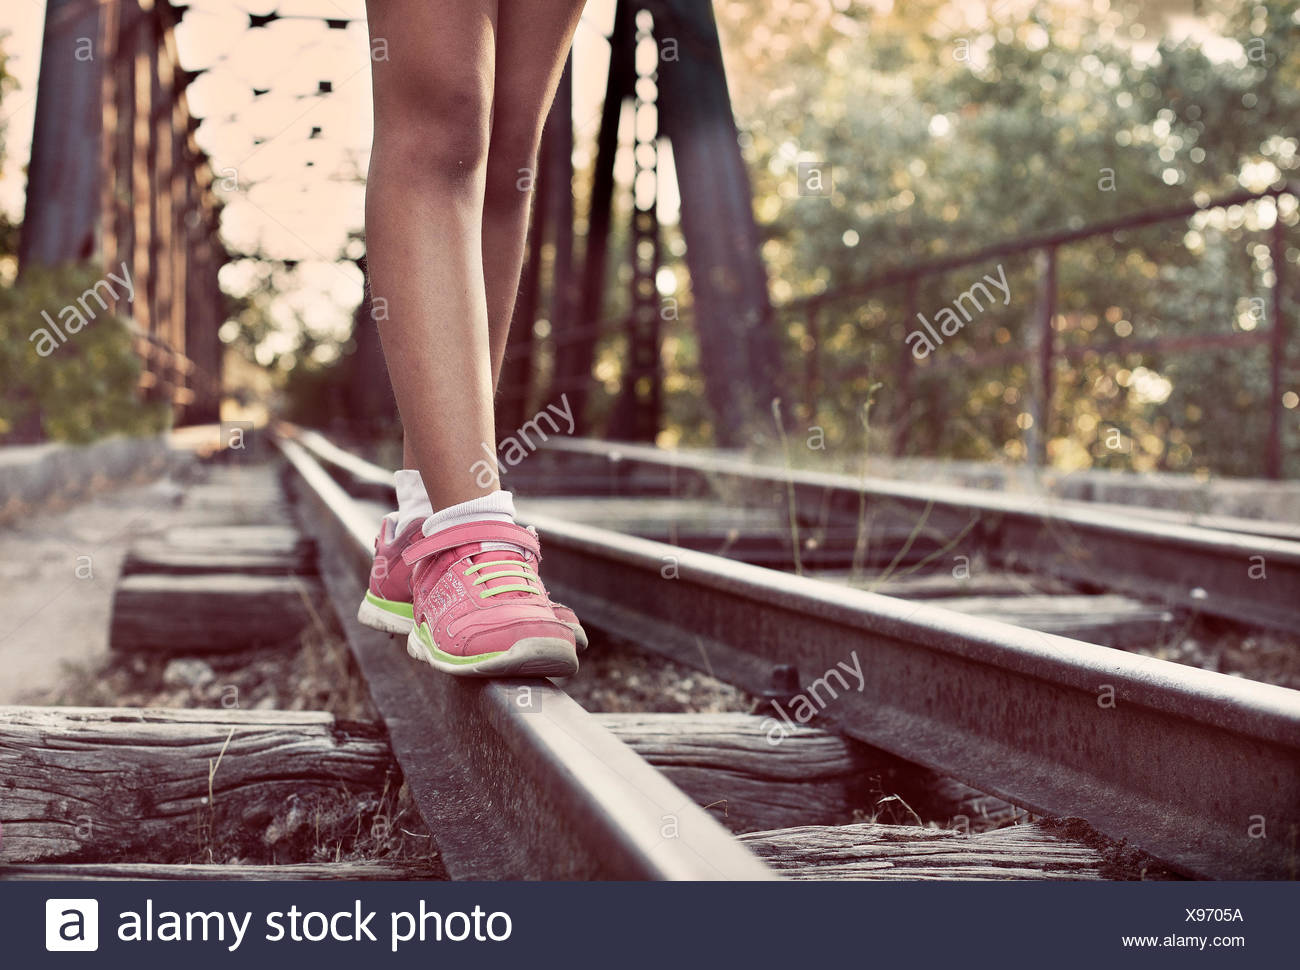 Close-up of woman's legs walking along train tracks - Stock Image